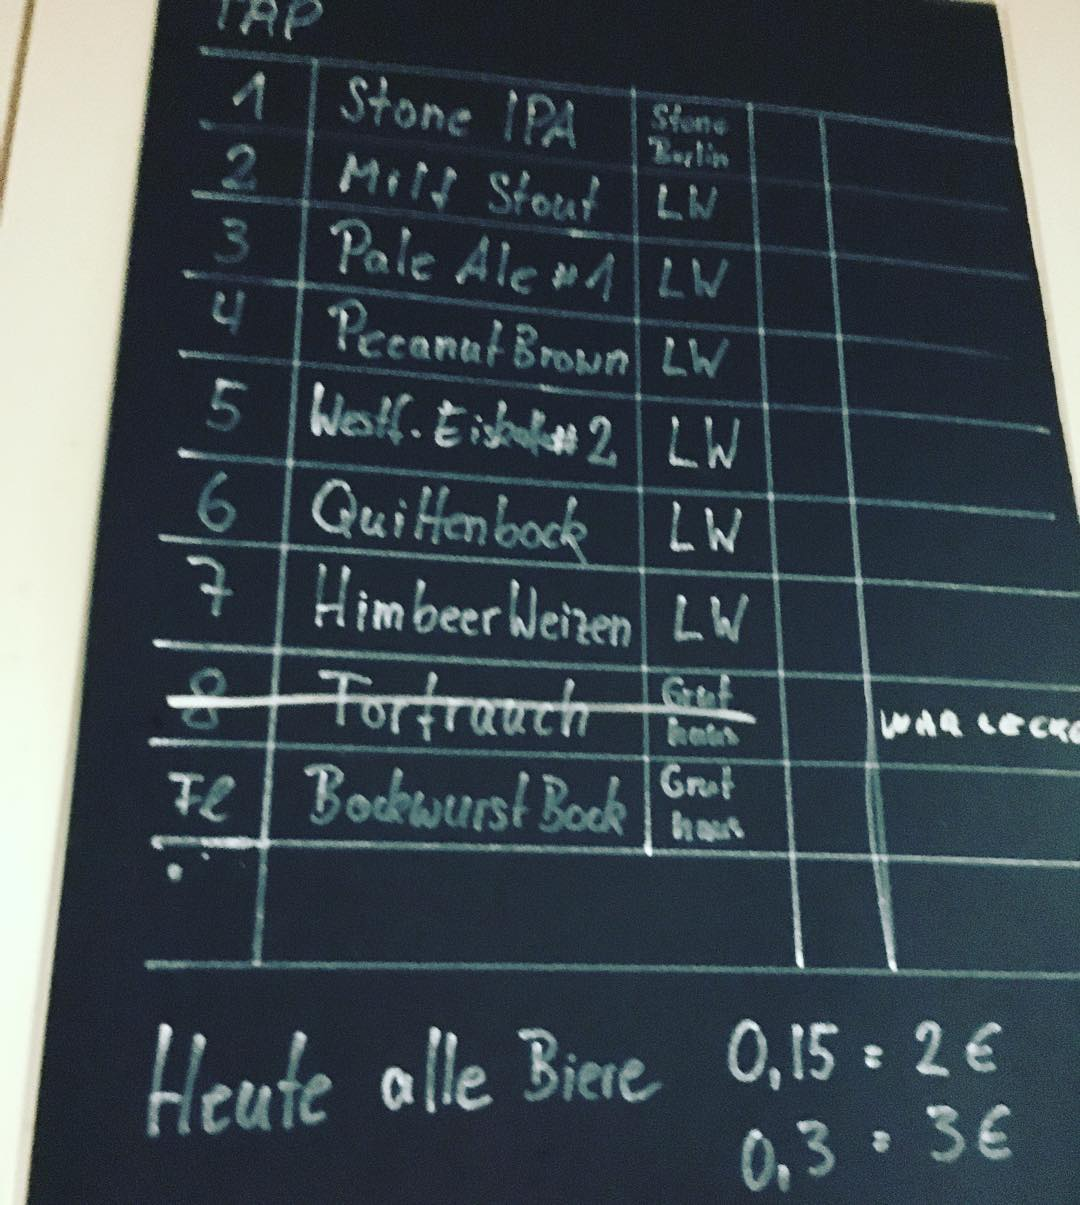 Need to untapp that! #münster #germany #craftbeer #läuterwerk #brewery